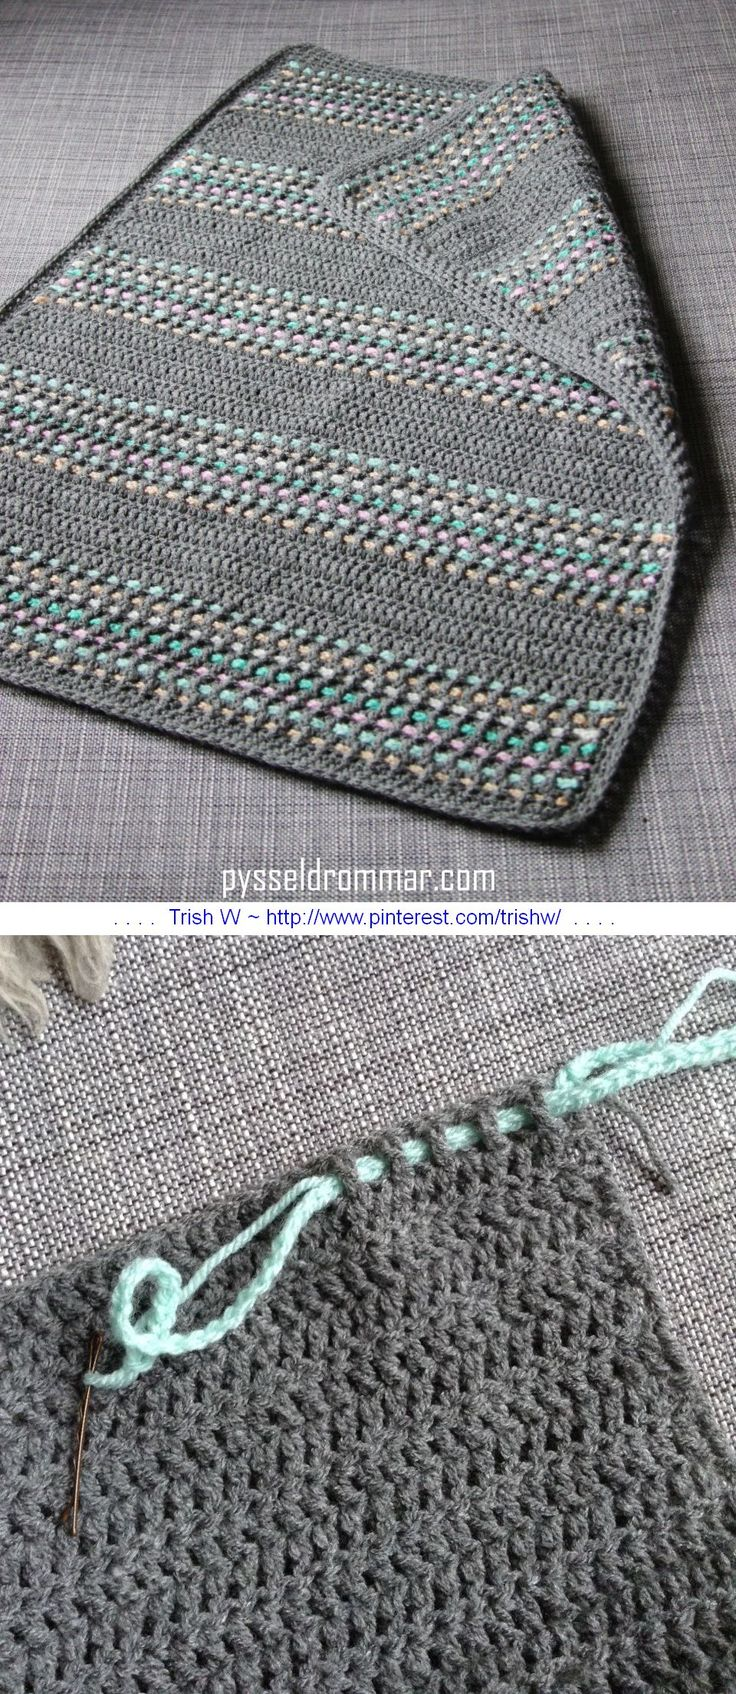 A very simple baby blanket worked in all DC, with a super-easy way to add color by weaving chains through the stitches.